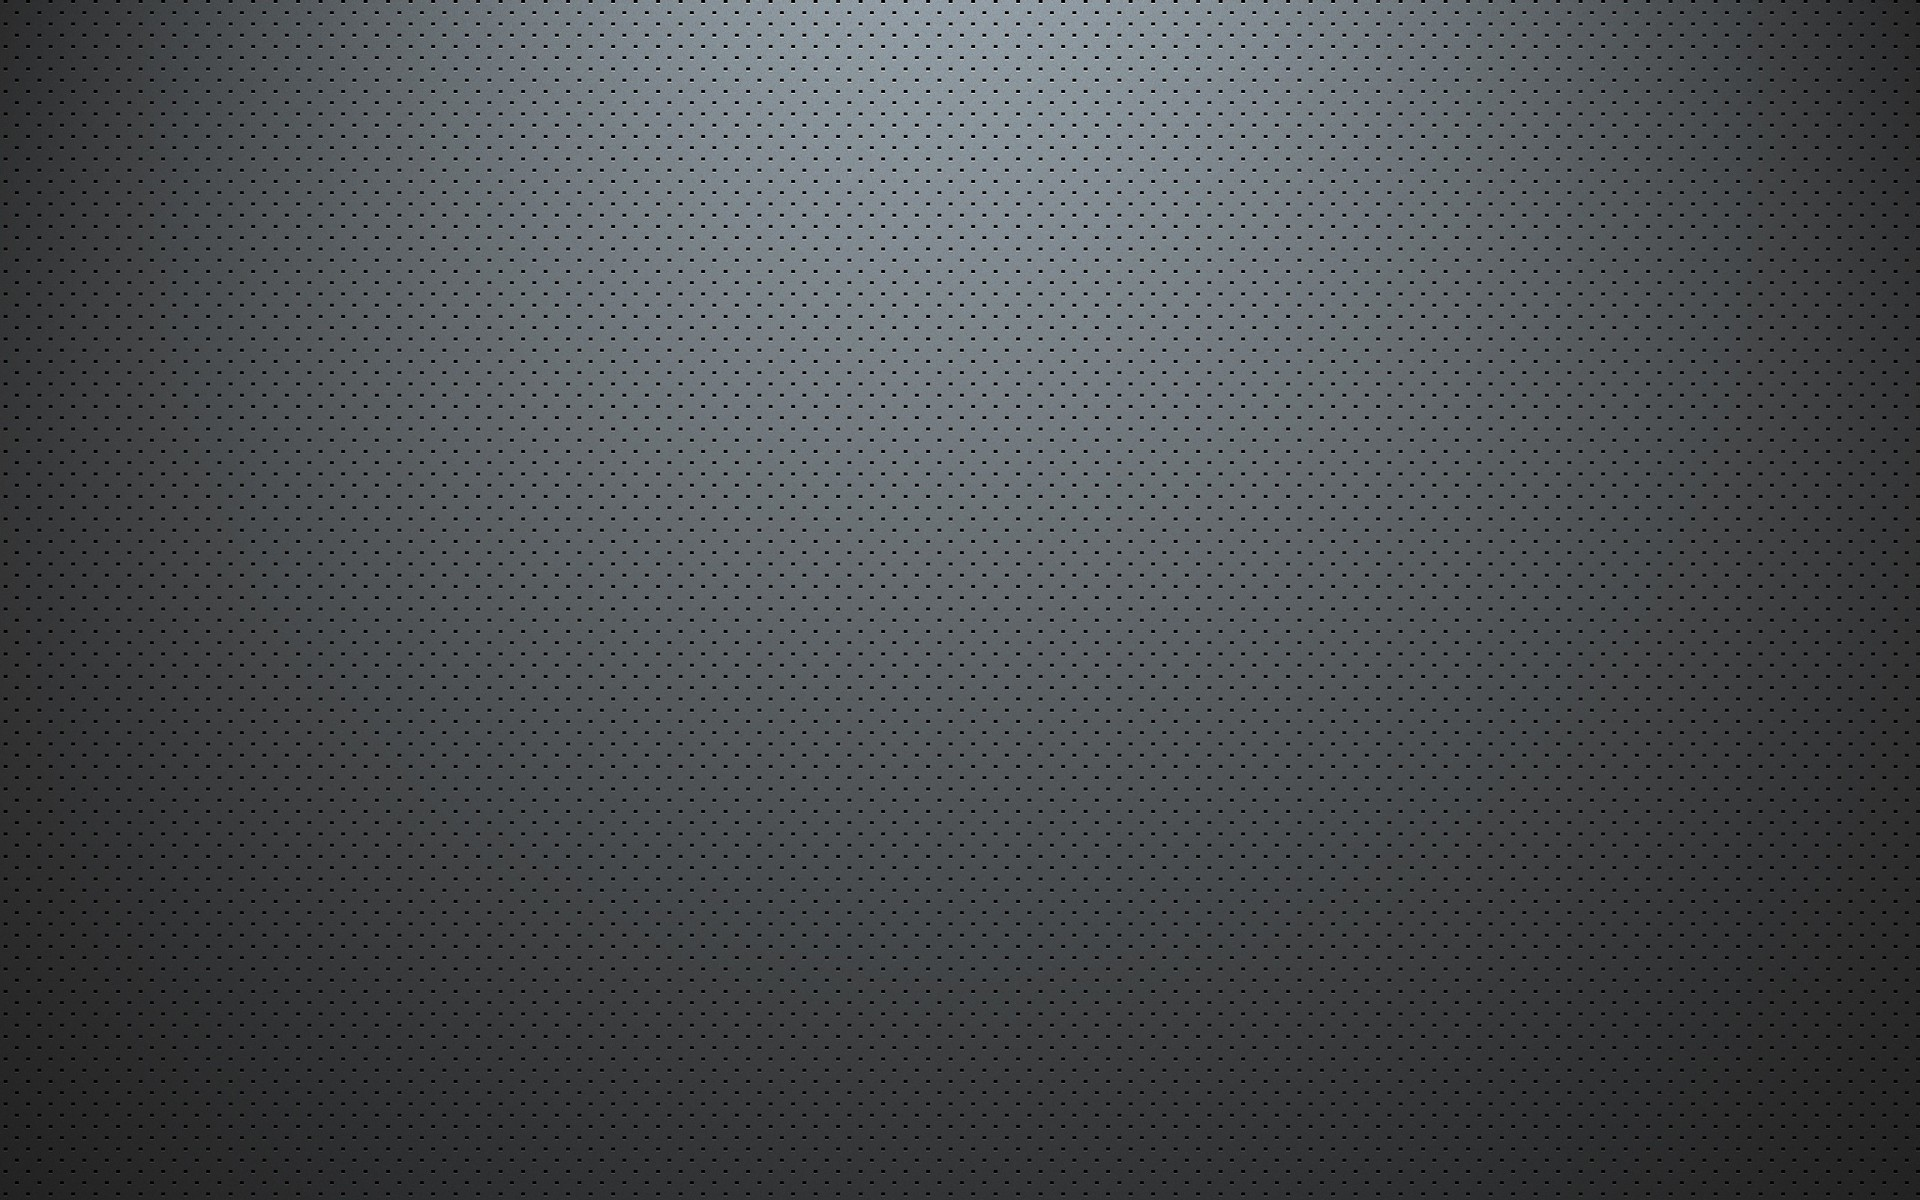 Perforated metal texture HD Wallpaper 1920×1080 Perforated metal texture HD  Wallpaper Perforated …